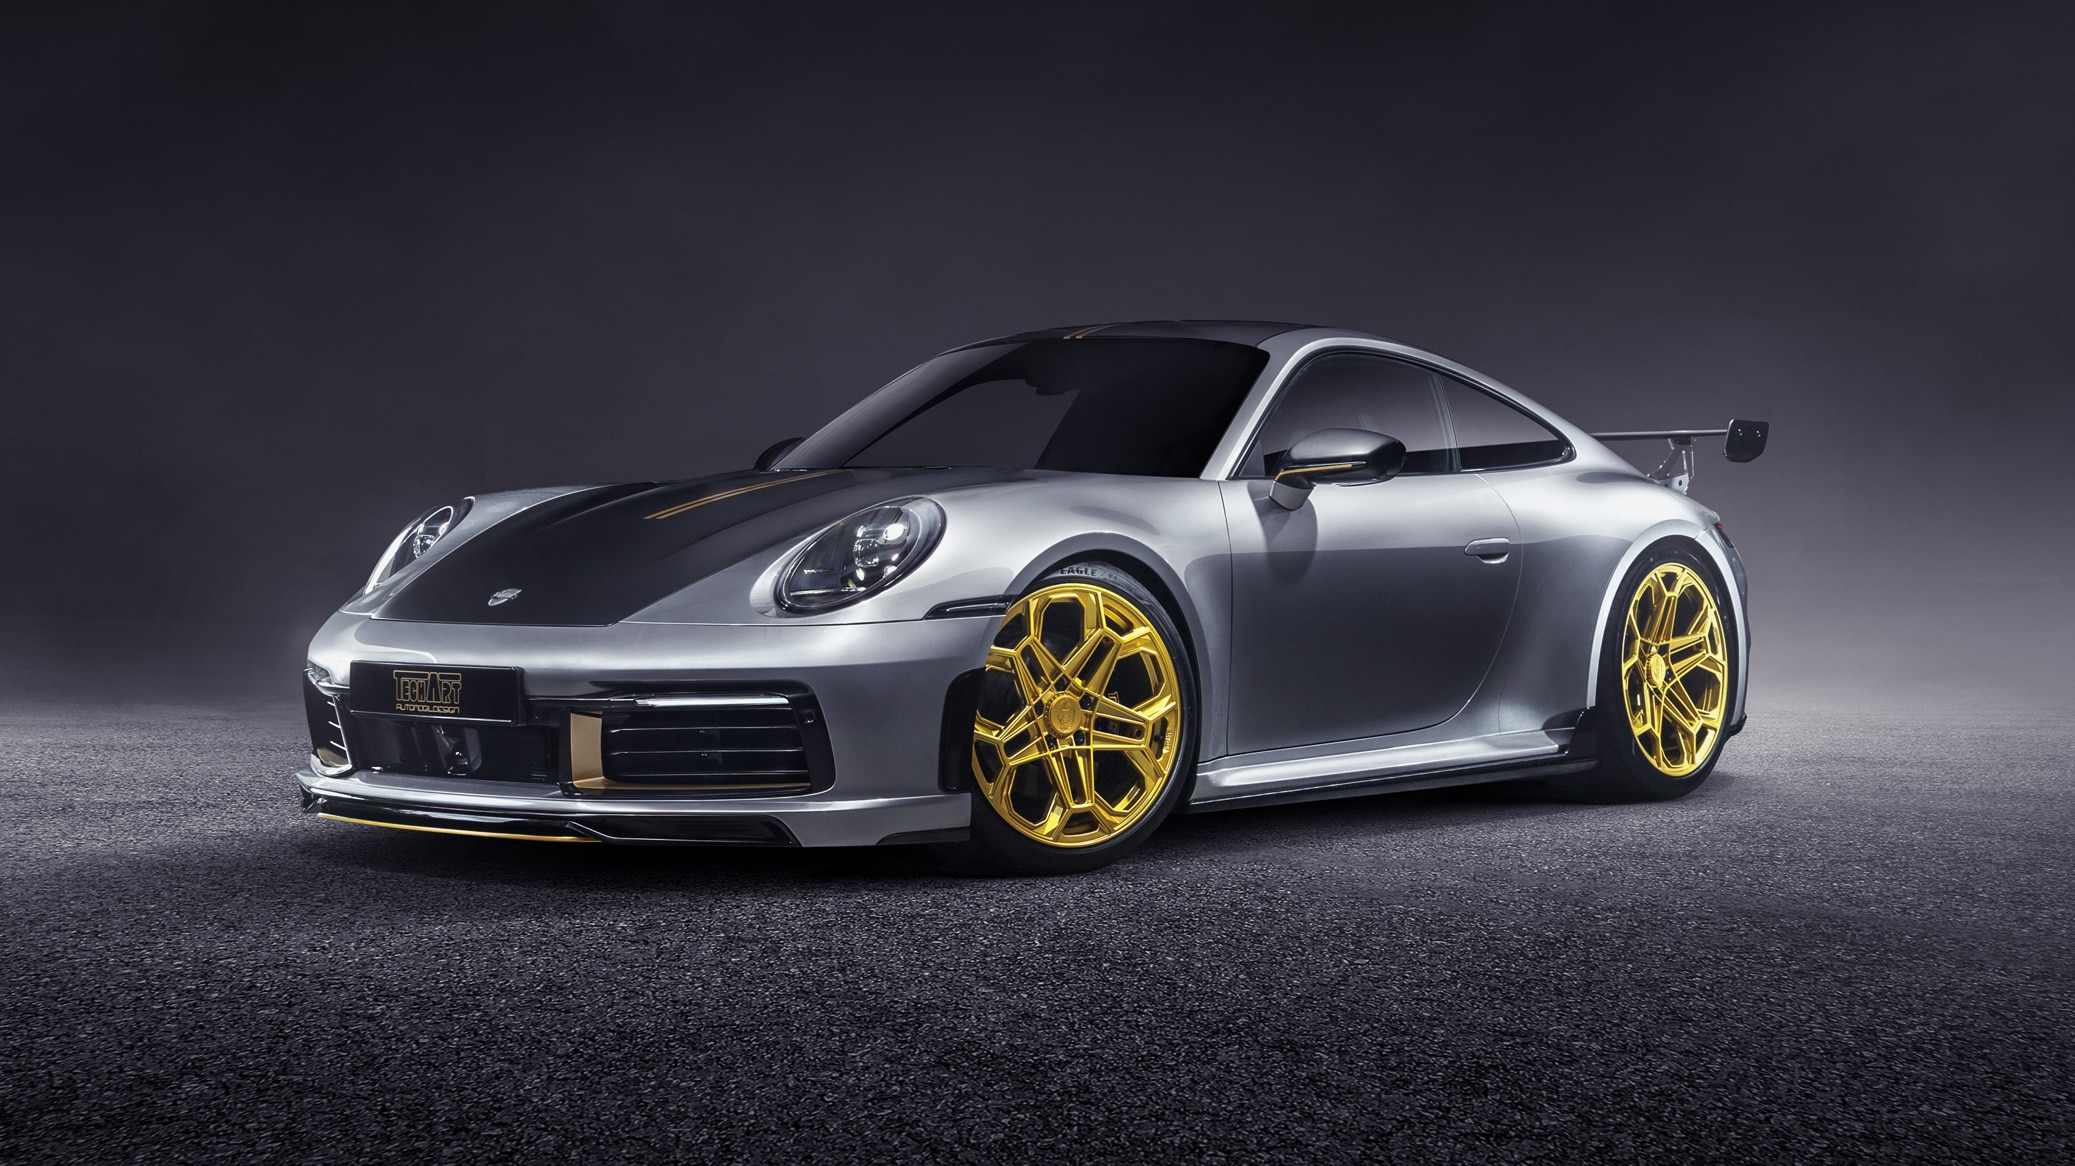 2020 Porsche 911 992 Gets The Techart Treatment And We Love The Interior